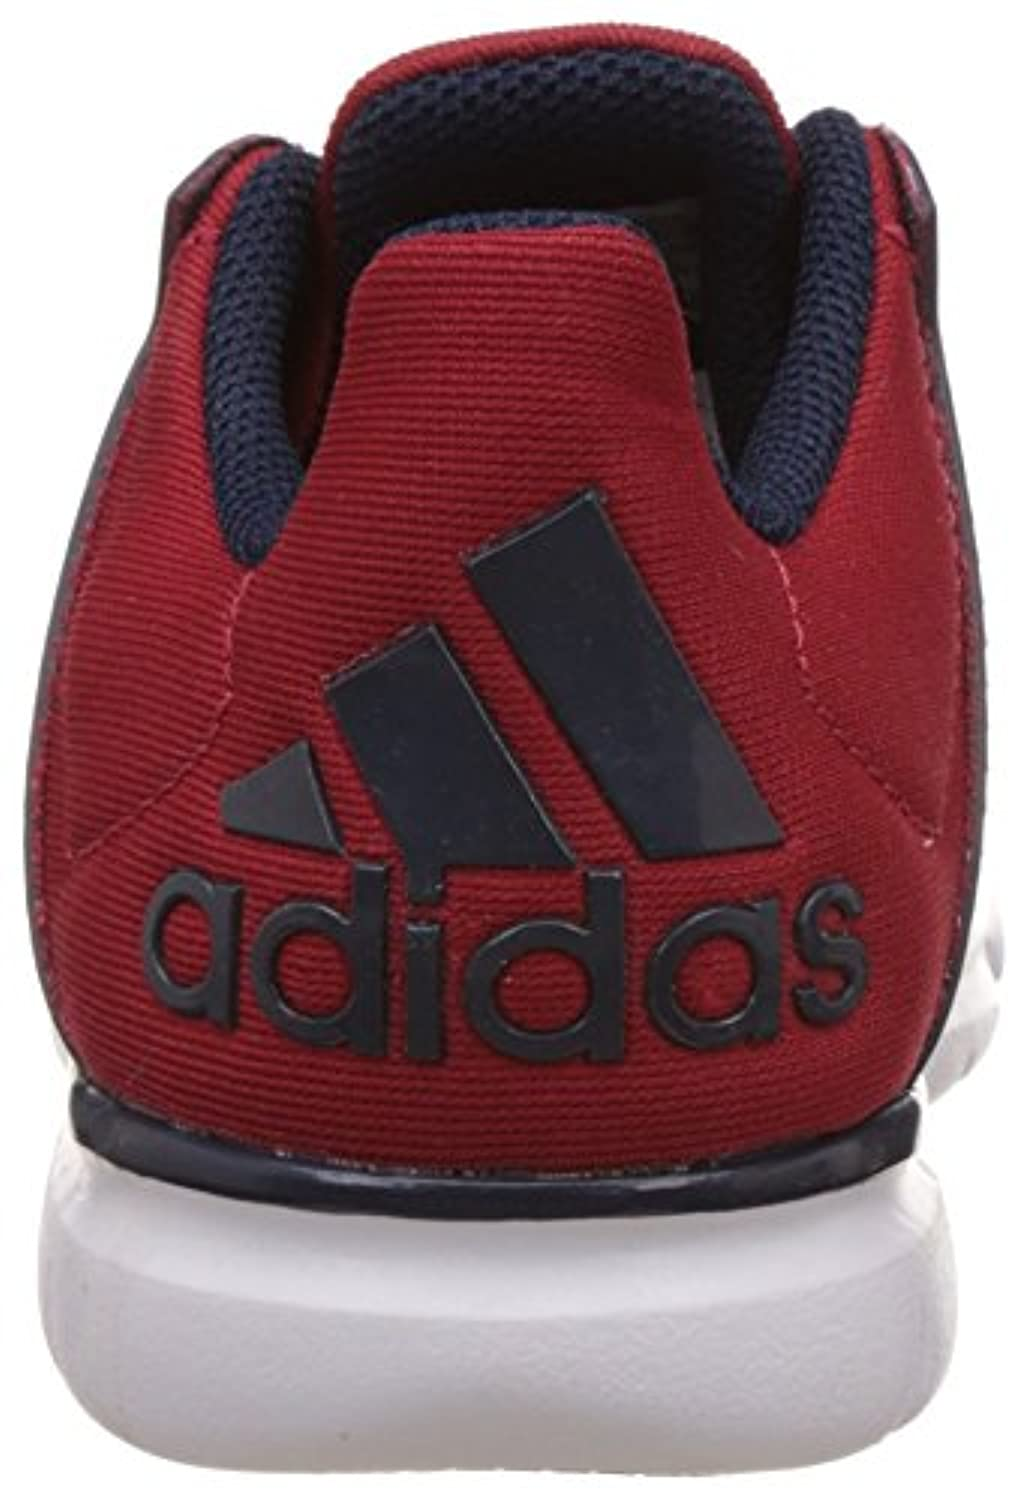 adidas Unisex Babies' Disney Spider-man K running Shoes multicolour Size: 1